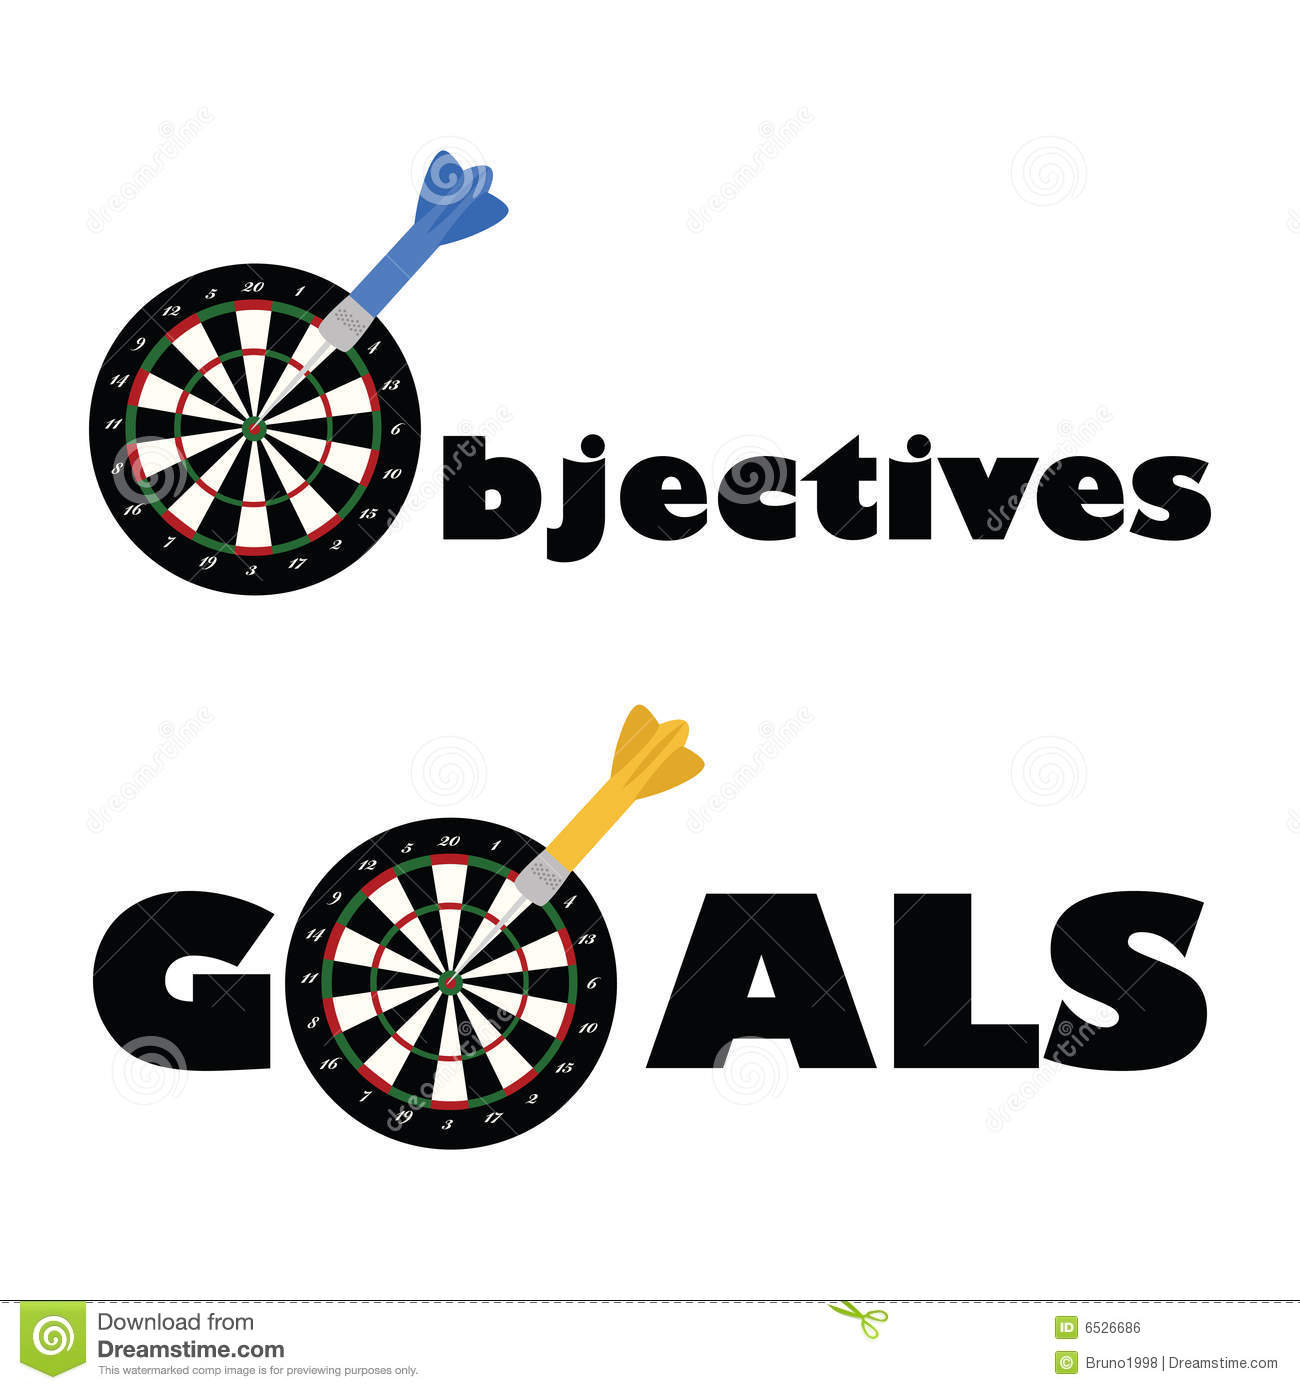 objective and goals royalty free stock image image 6526686